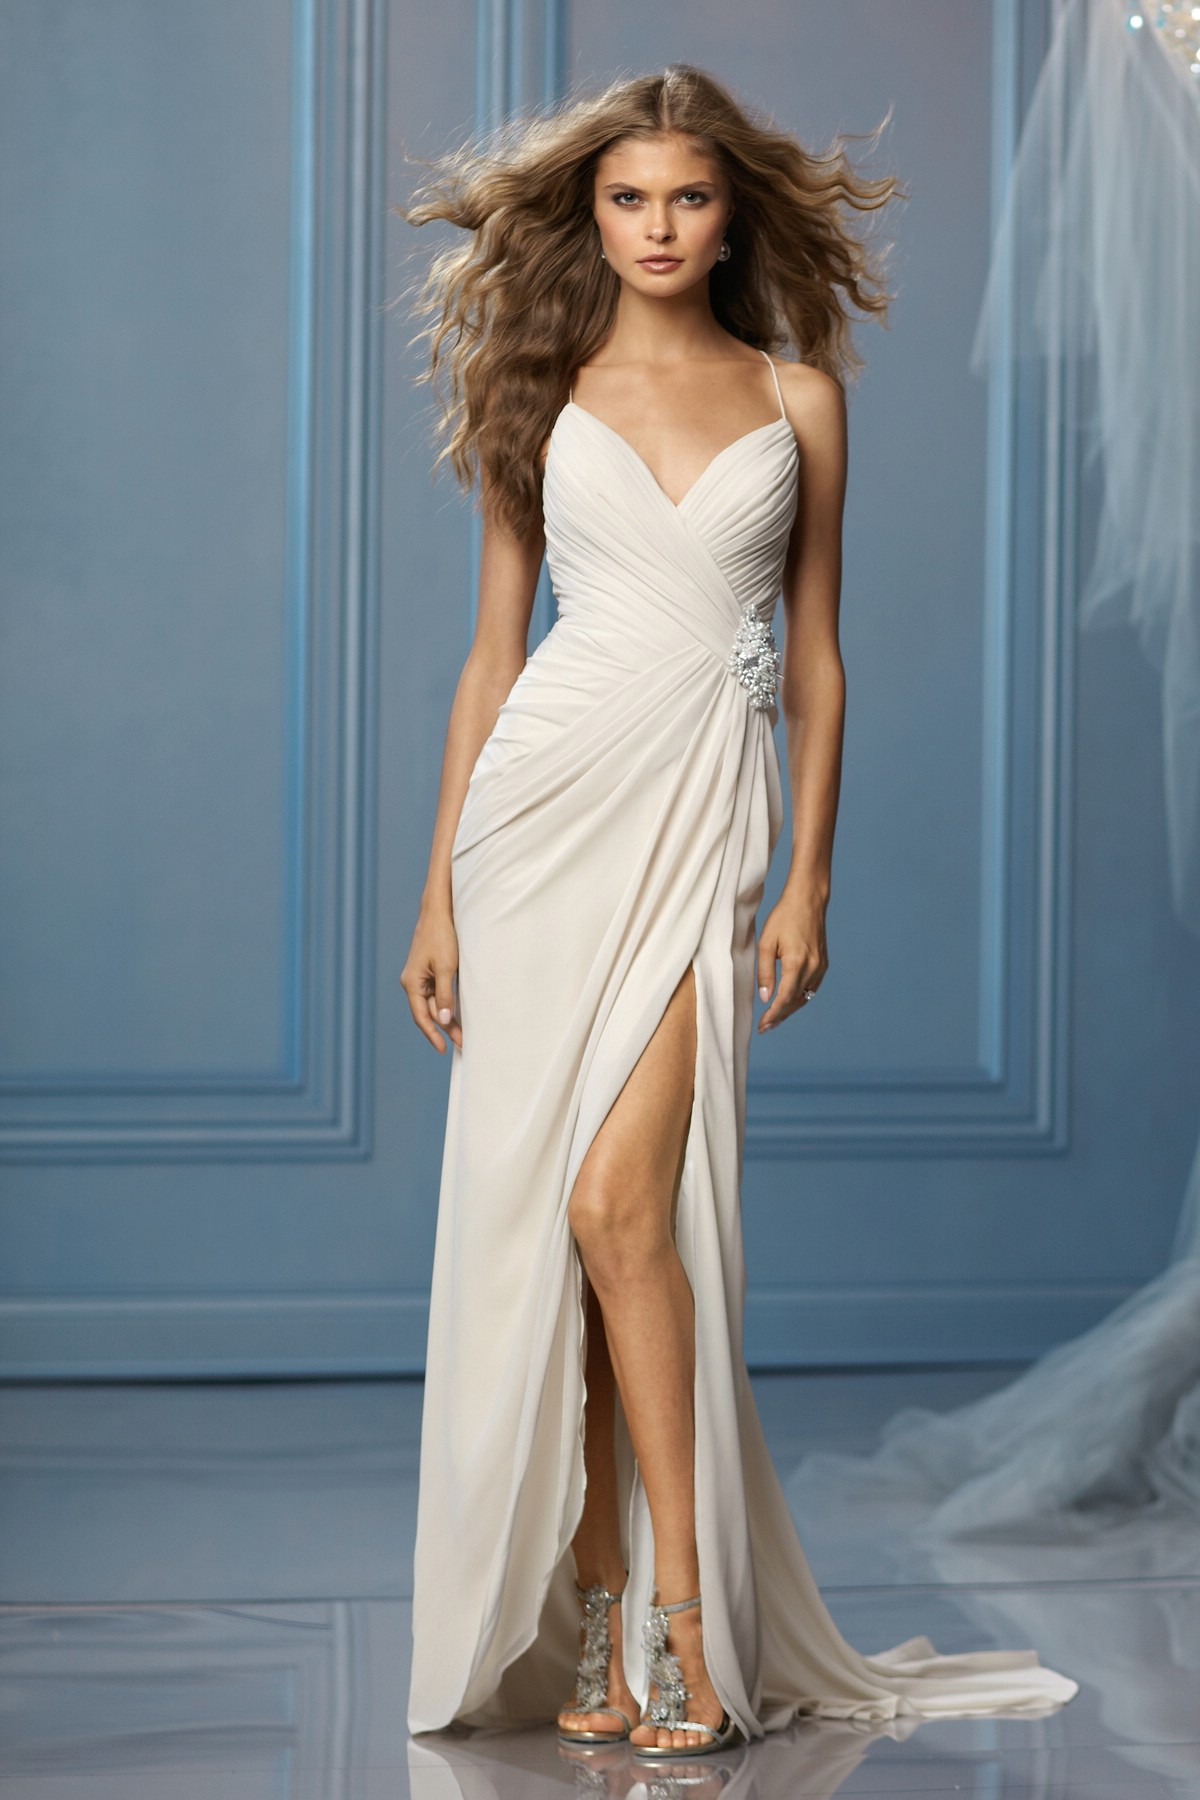 Perfect Britney Spears Wedding Gown Image - All Wedding Dresses ...